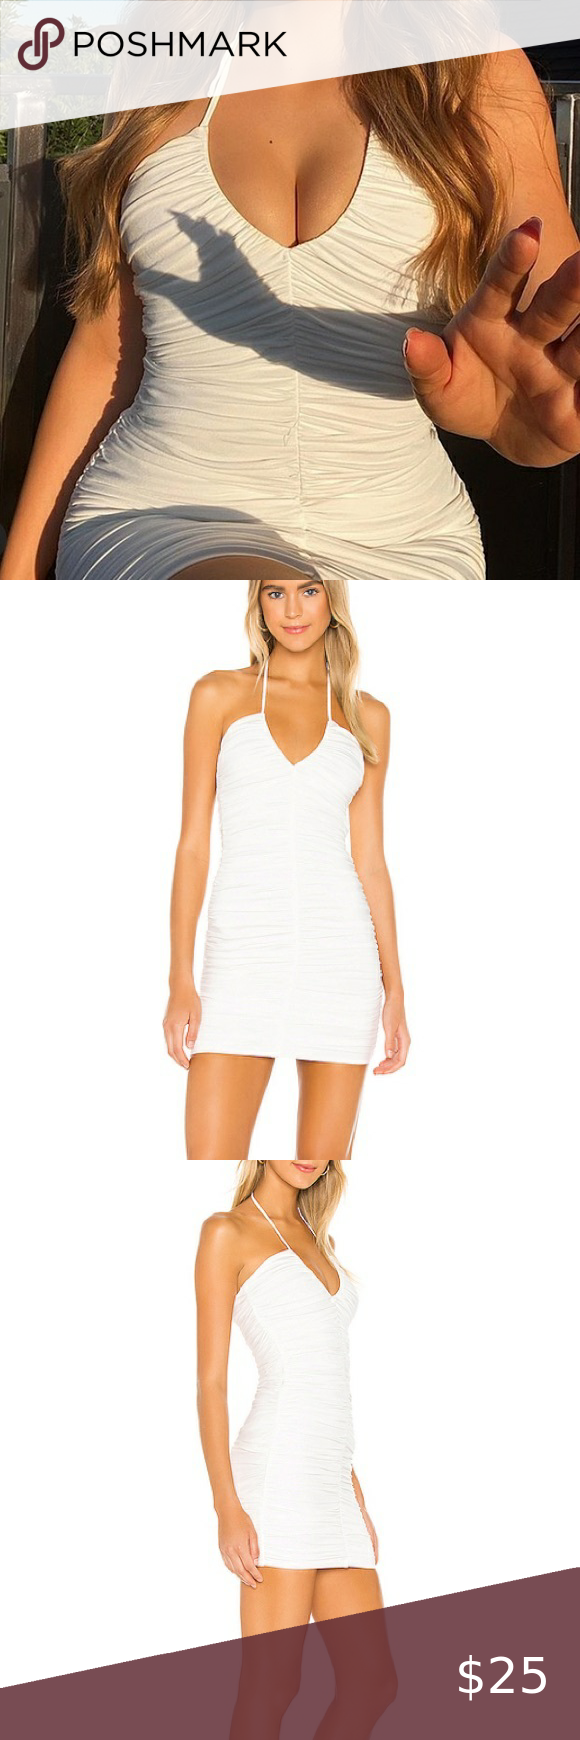 Stretchy White Ruched Dress Ruched Dress Ruching Dresses [ 1740 x 580 Pixel ]